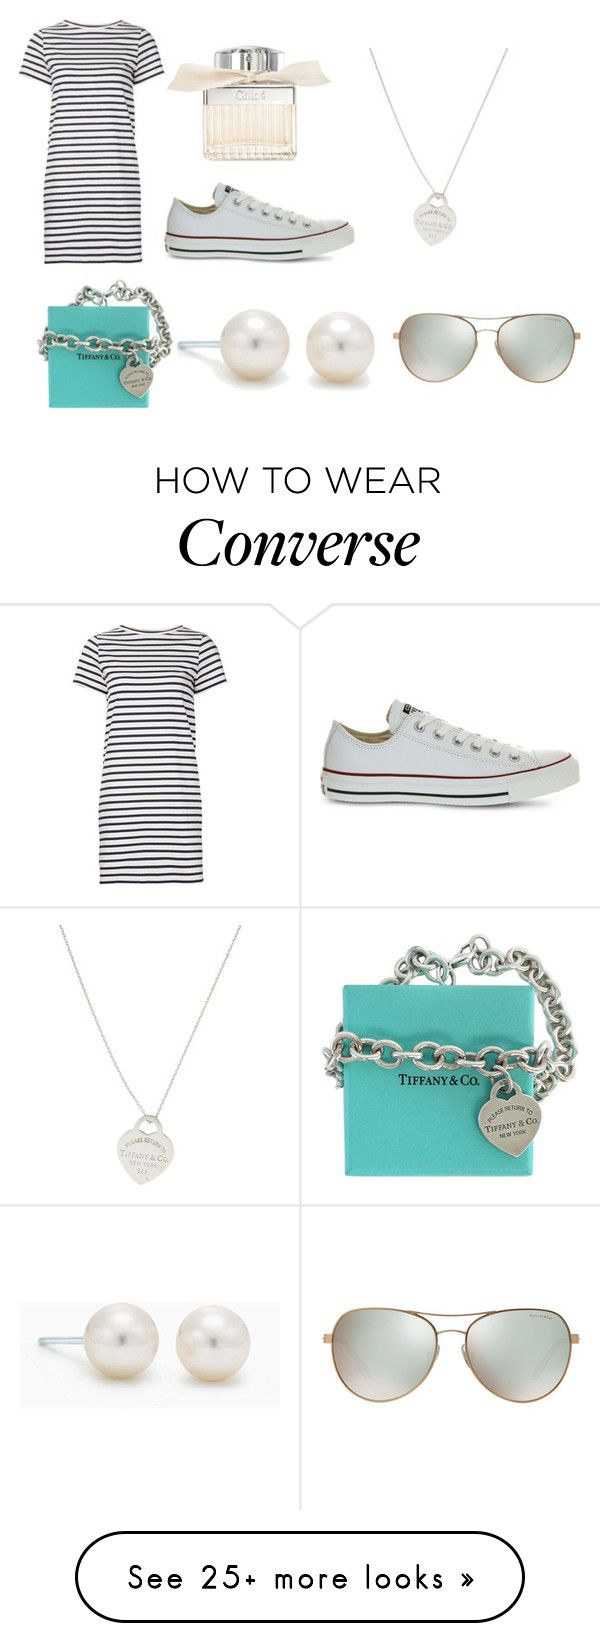 """""""A little bit of Tiaffany and co."""" by soph-133 on Polyvore featuring M.i.h Jeans, Converse, Chloé and Tiffany & Co."""